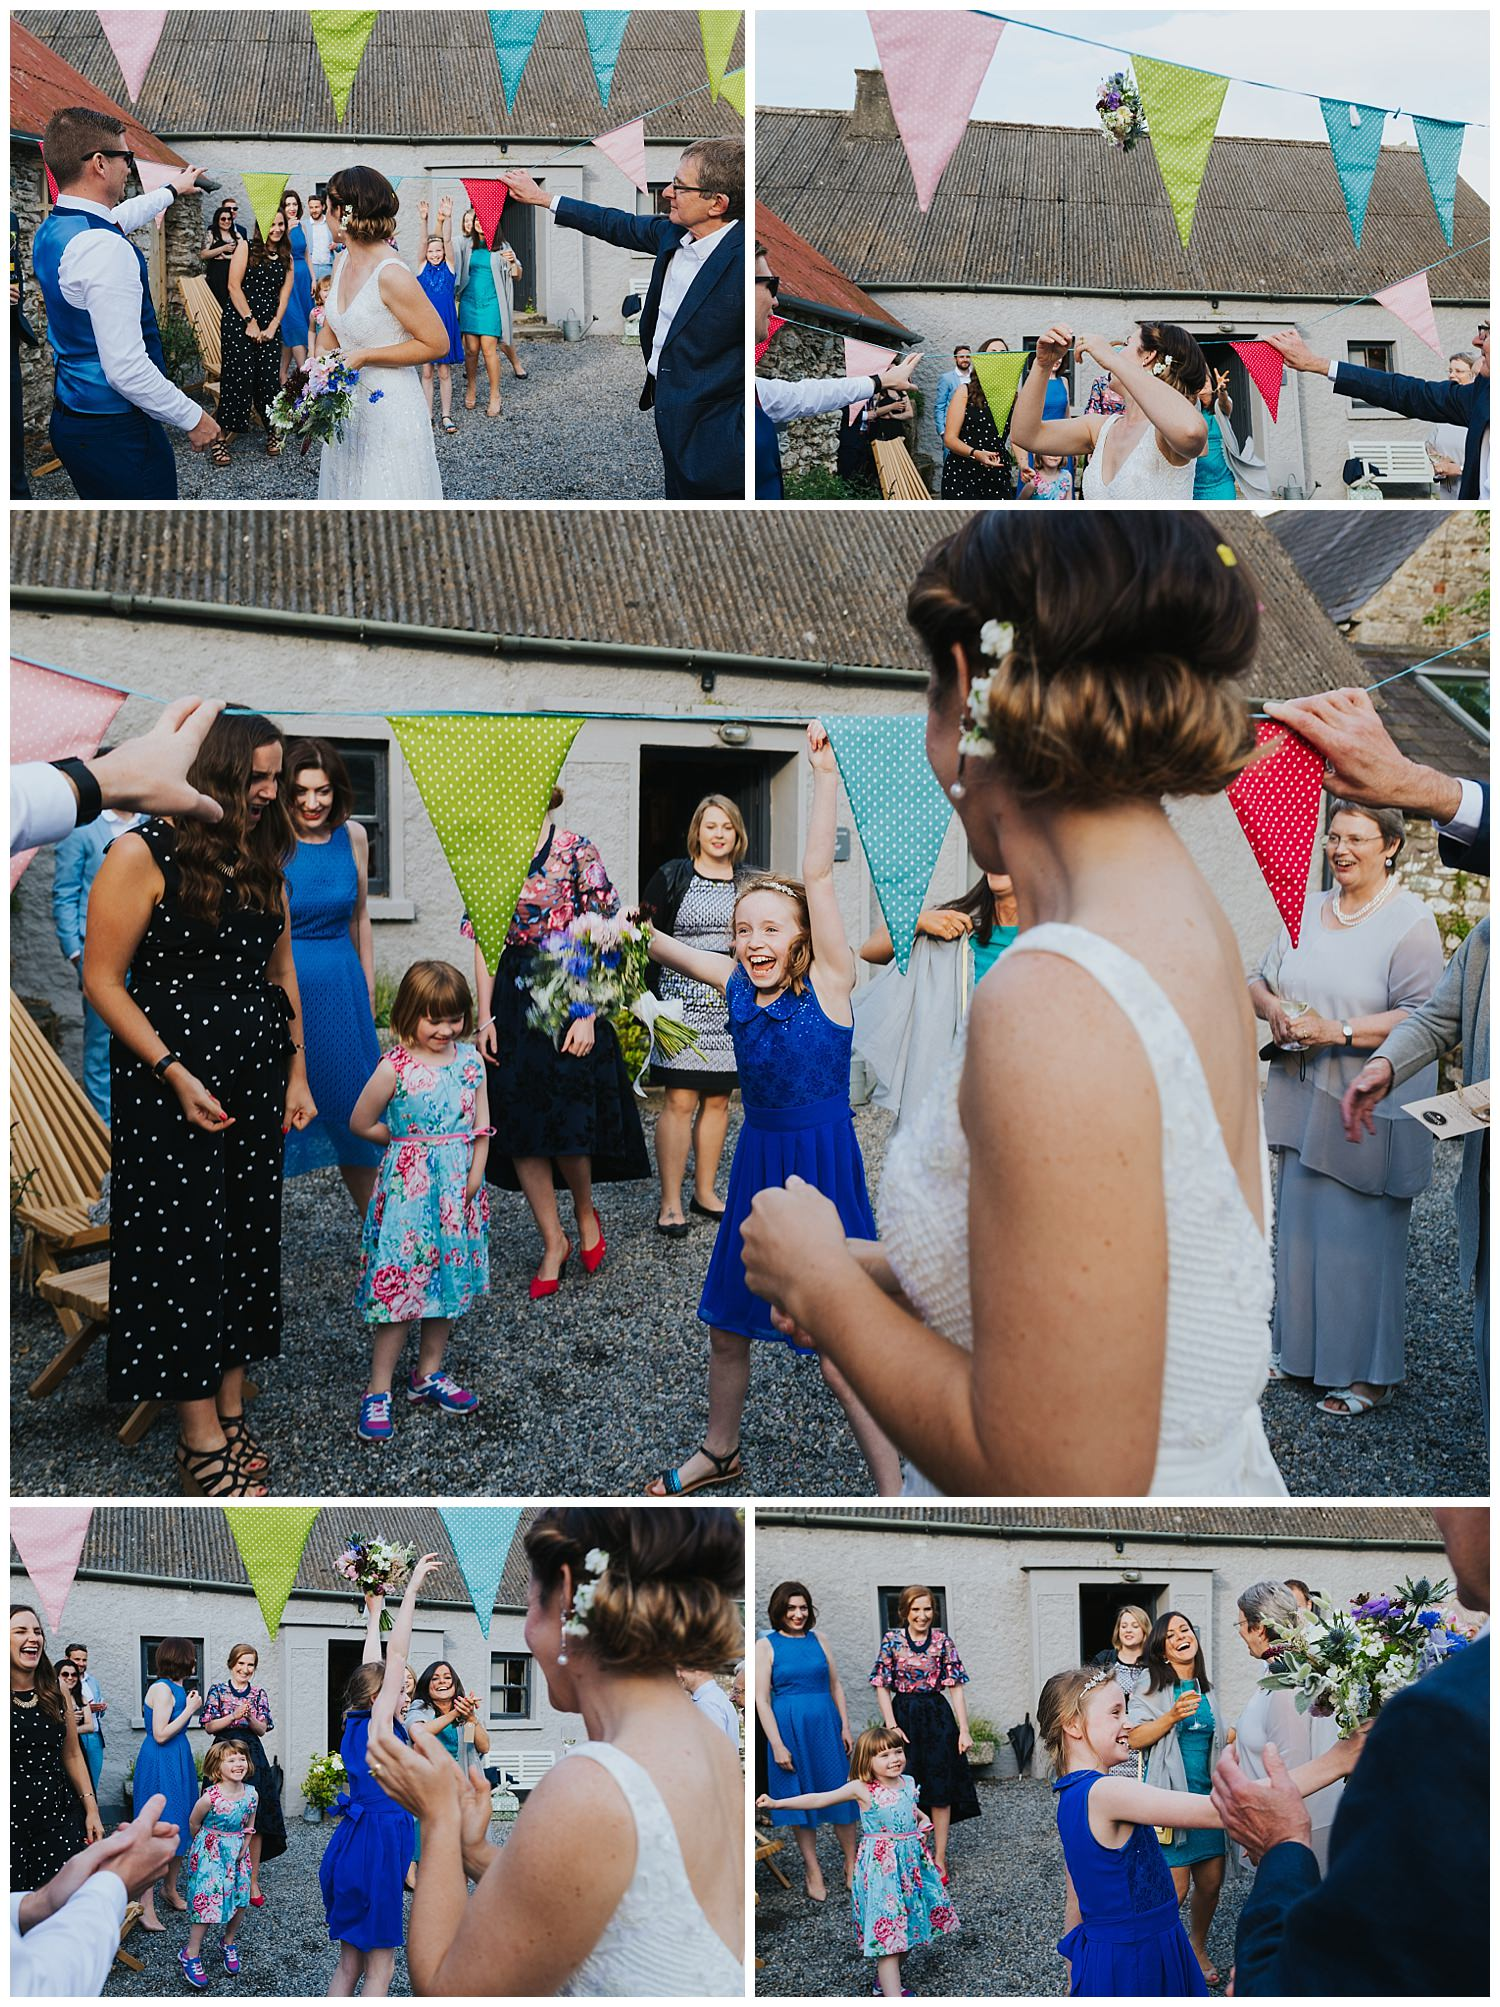 e+t_ballilogue_kilkenny_wedding_photographer_liviafigueiredo_203.jpg